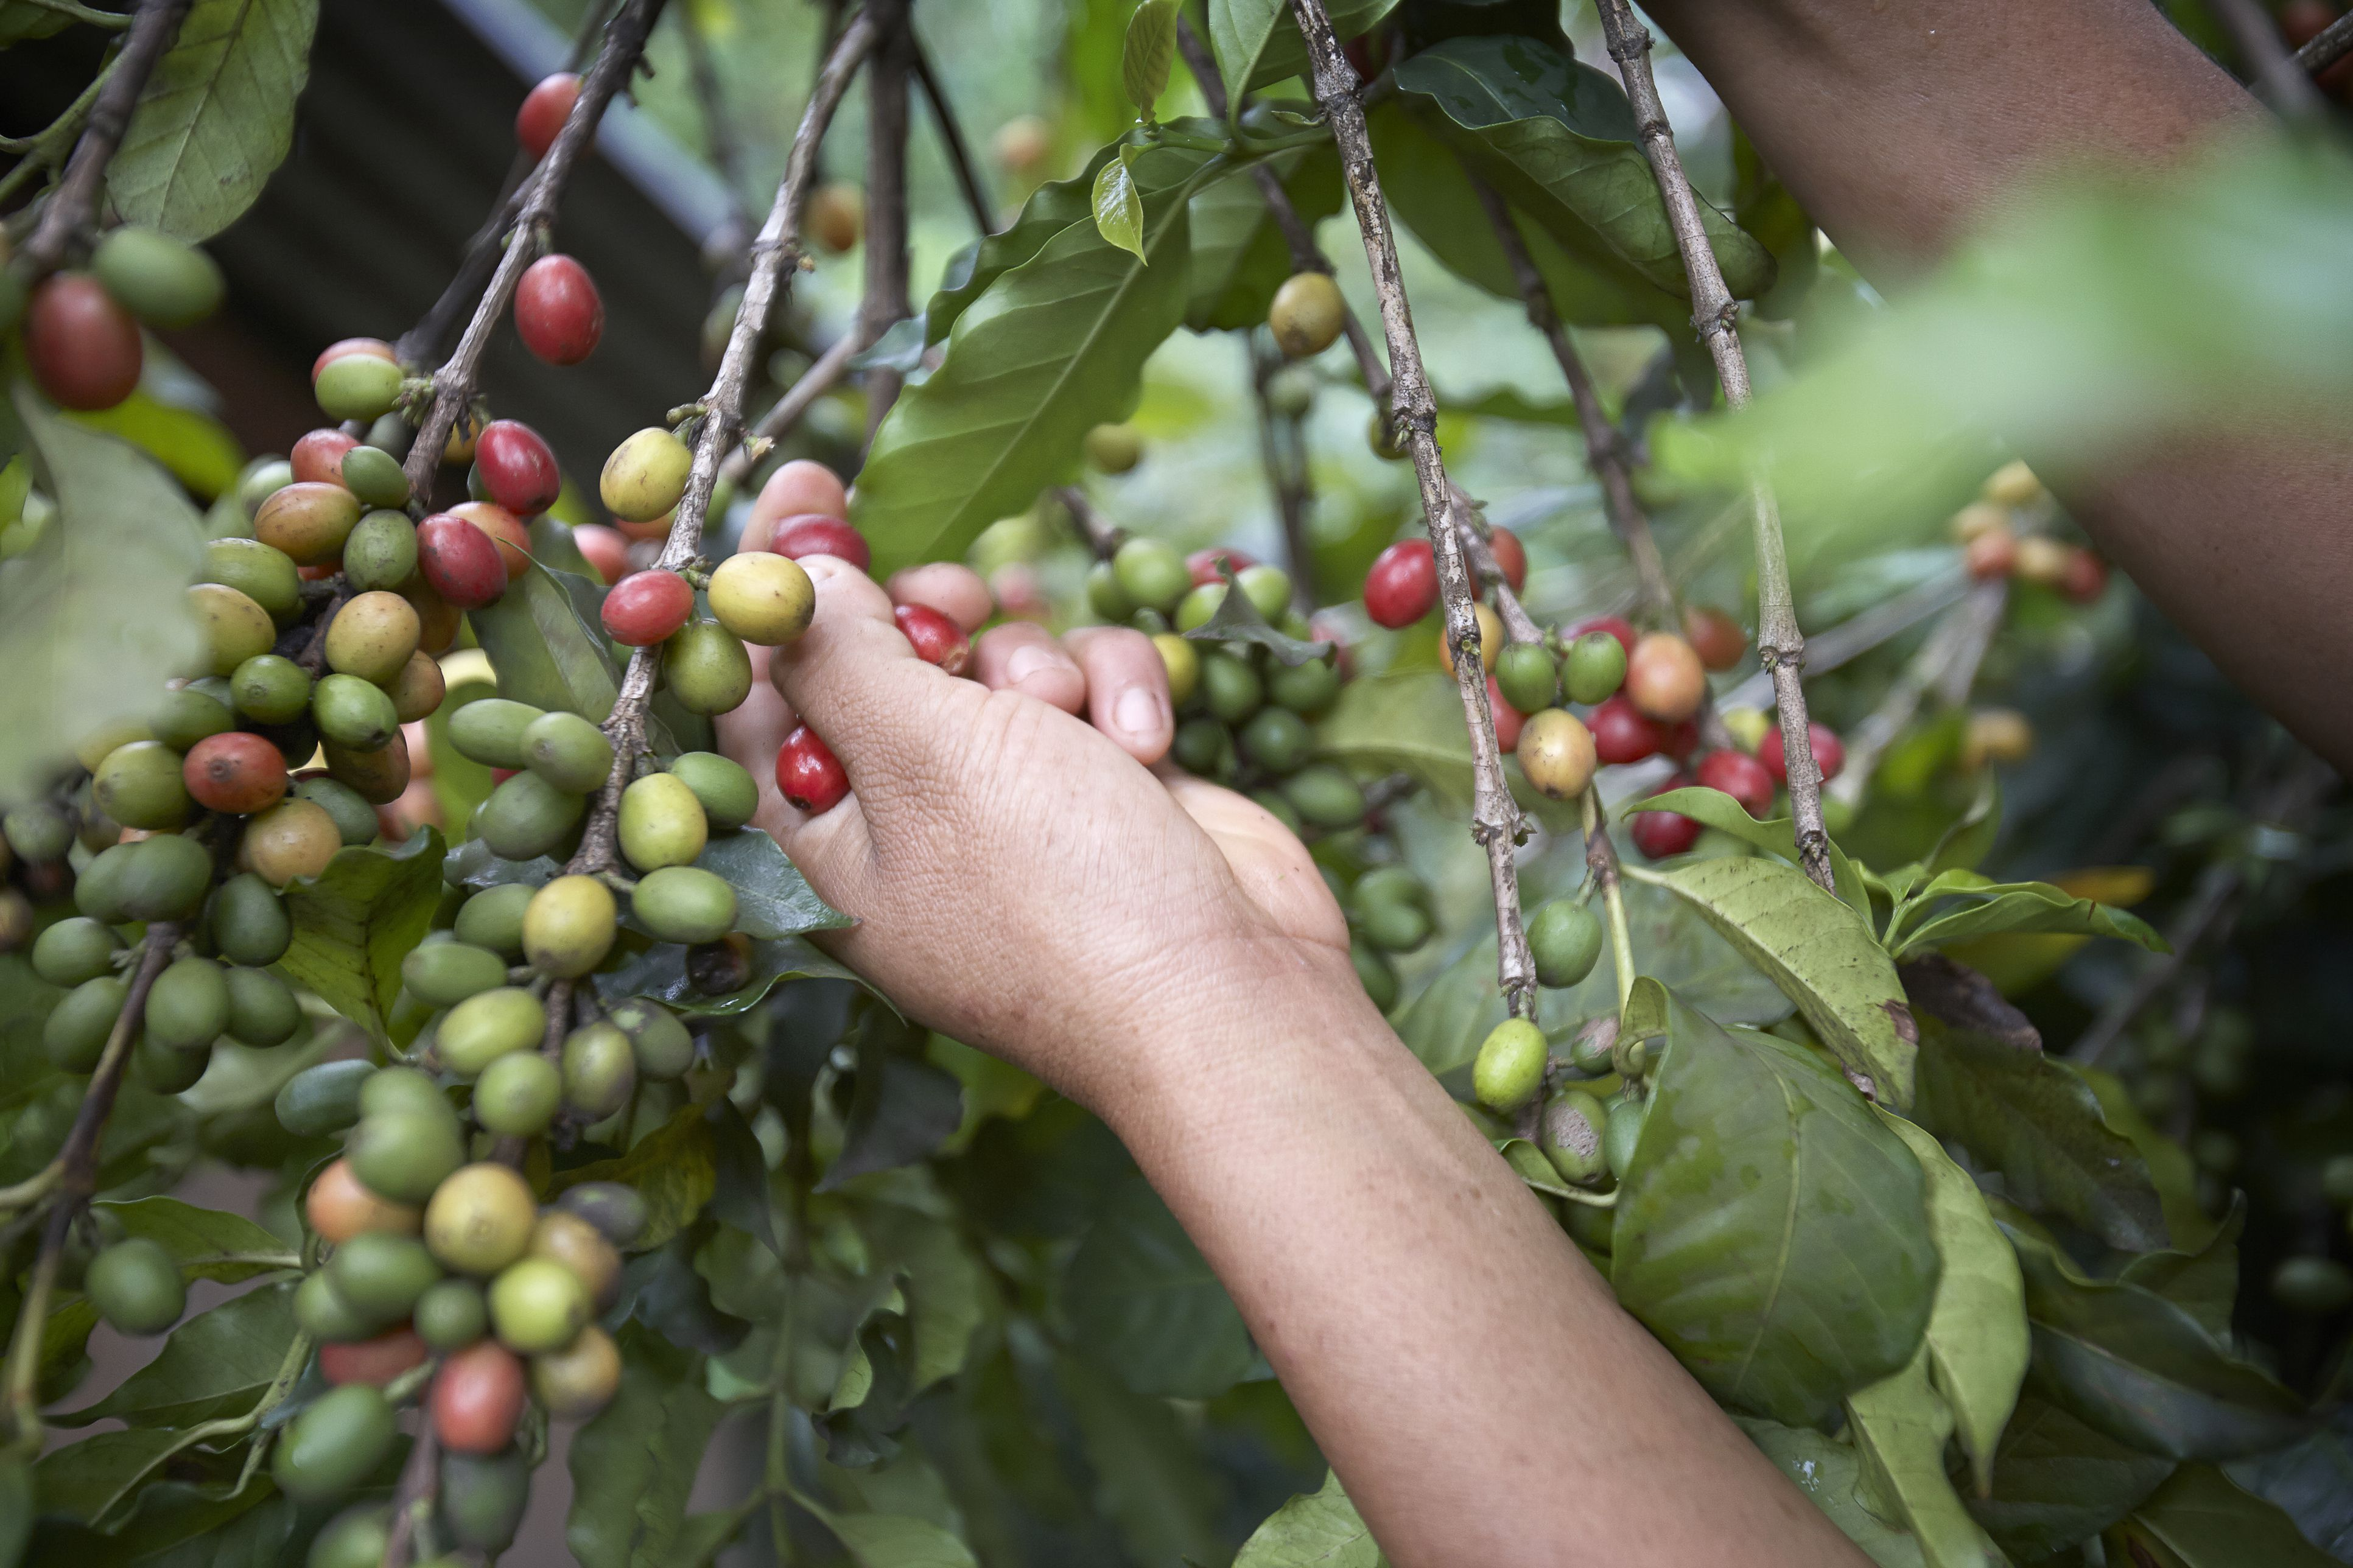 Picking coffee cherries in Mexico